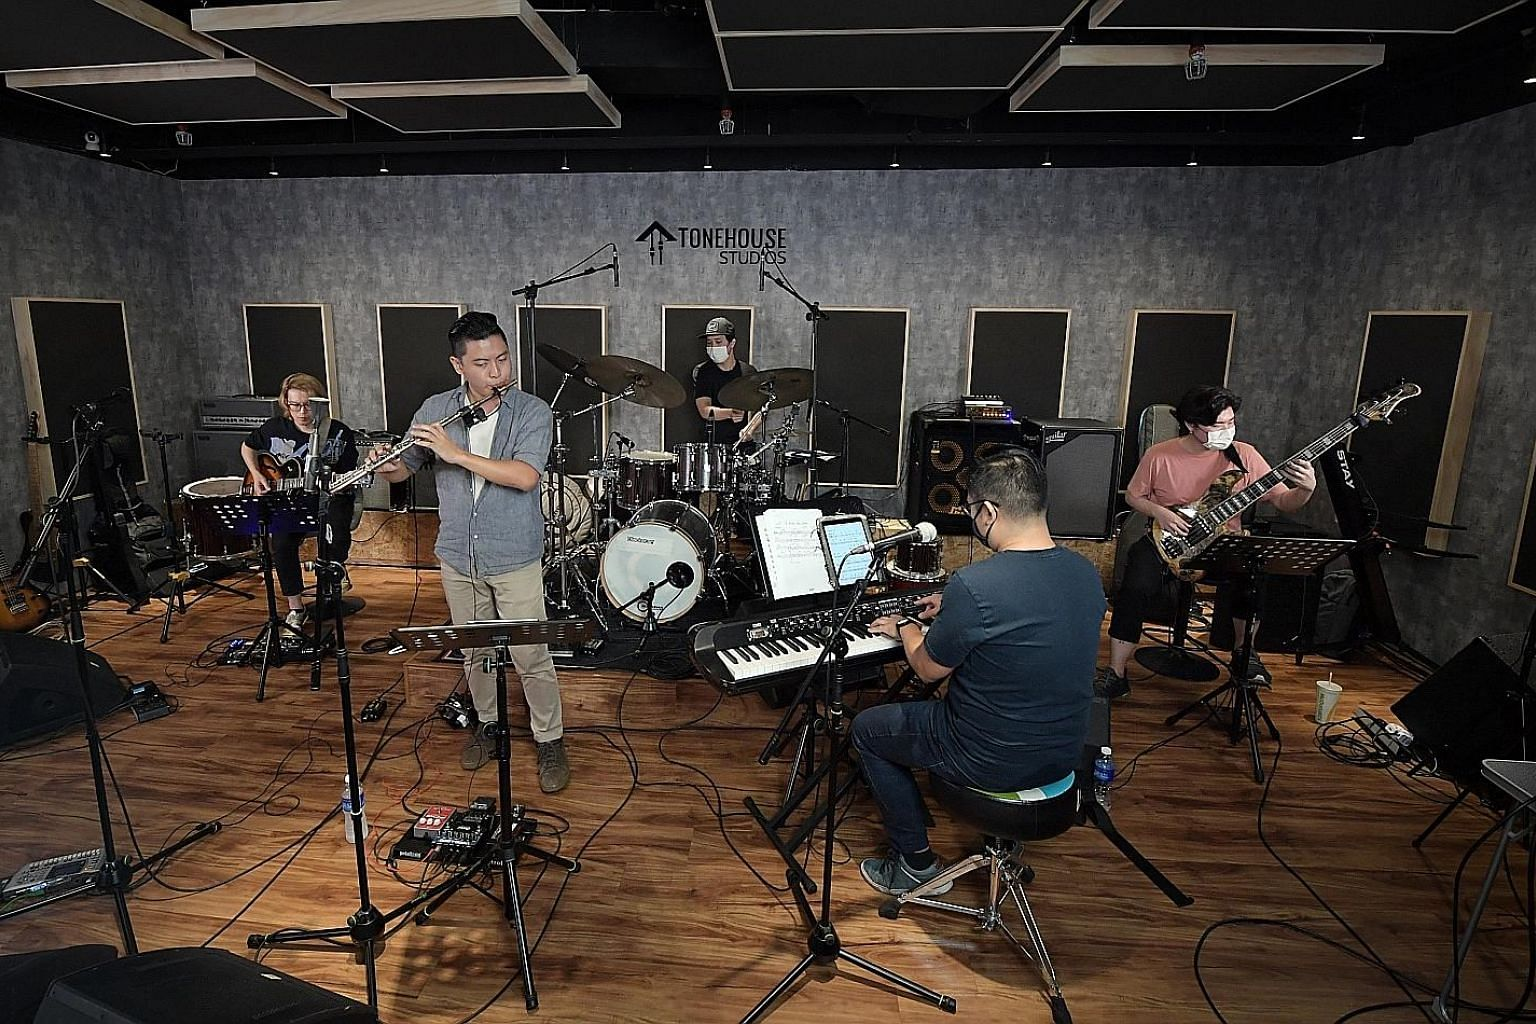 Local jazz musicians (above, from far left) Sebastian Ho, Rit Xu, Teo Jia Rong, Jordan Wei and Ben Poh doing a live-stream performance at music studio Tonehouse on Monday.